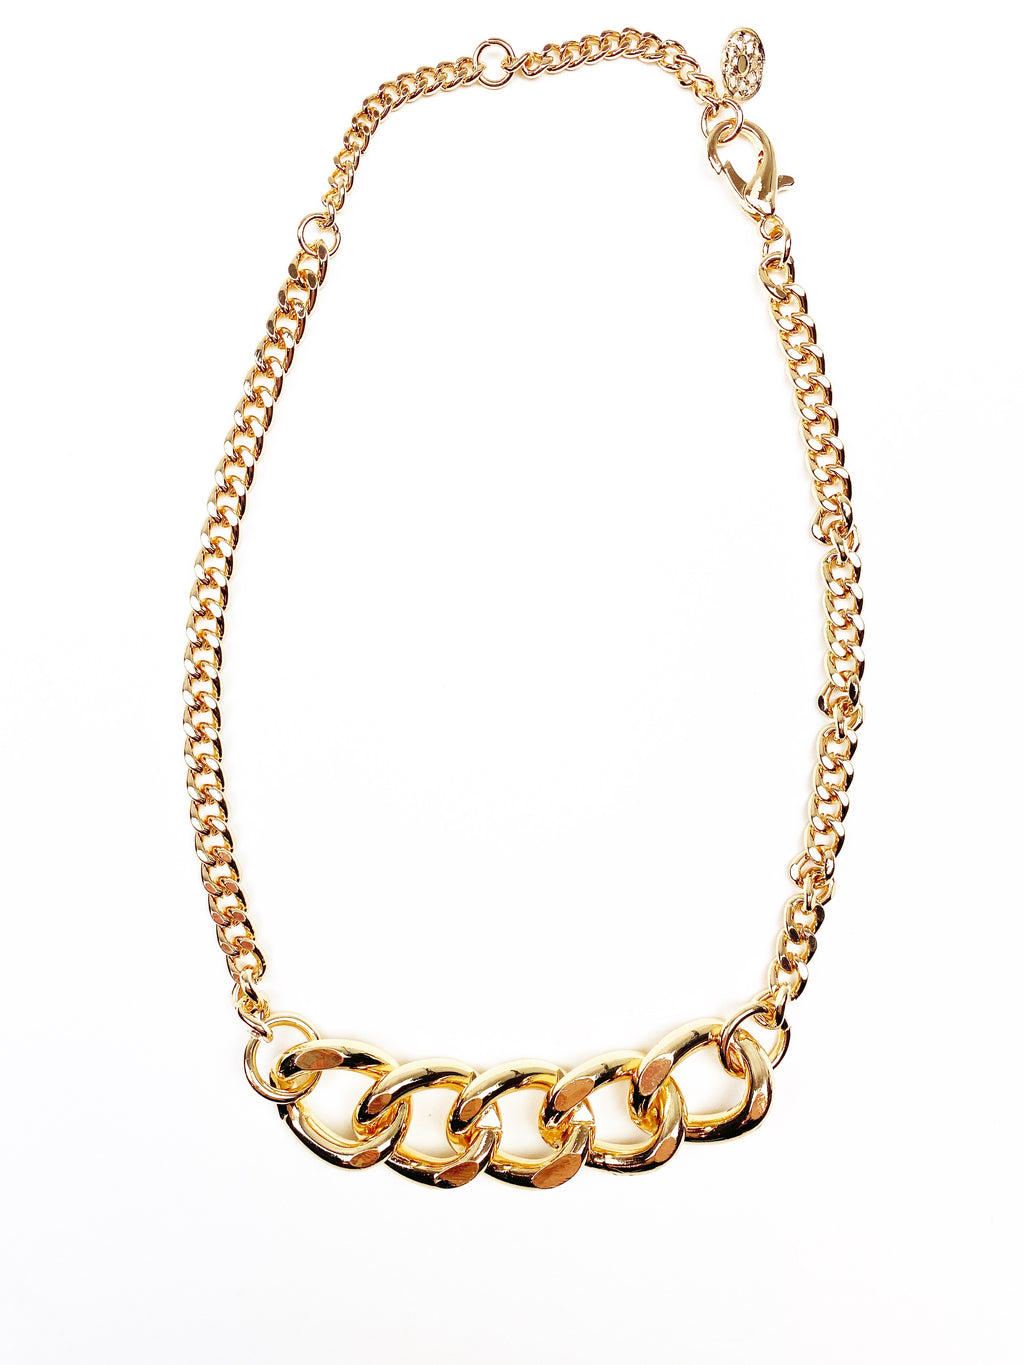 Biggie Smalls Chain Necklace